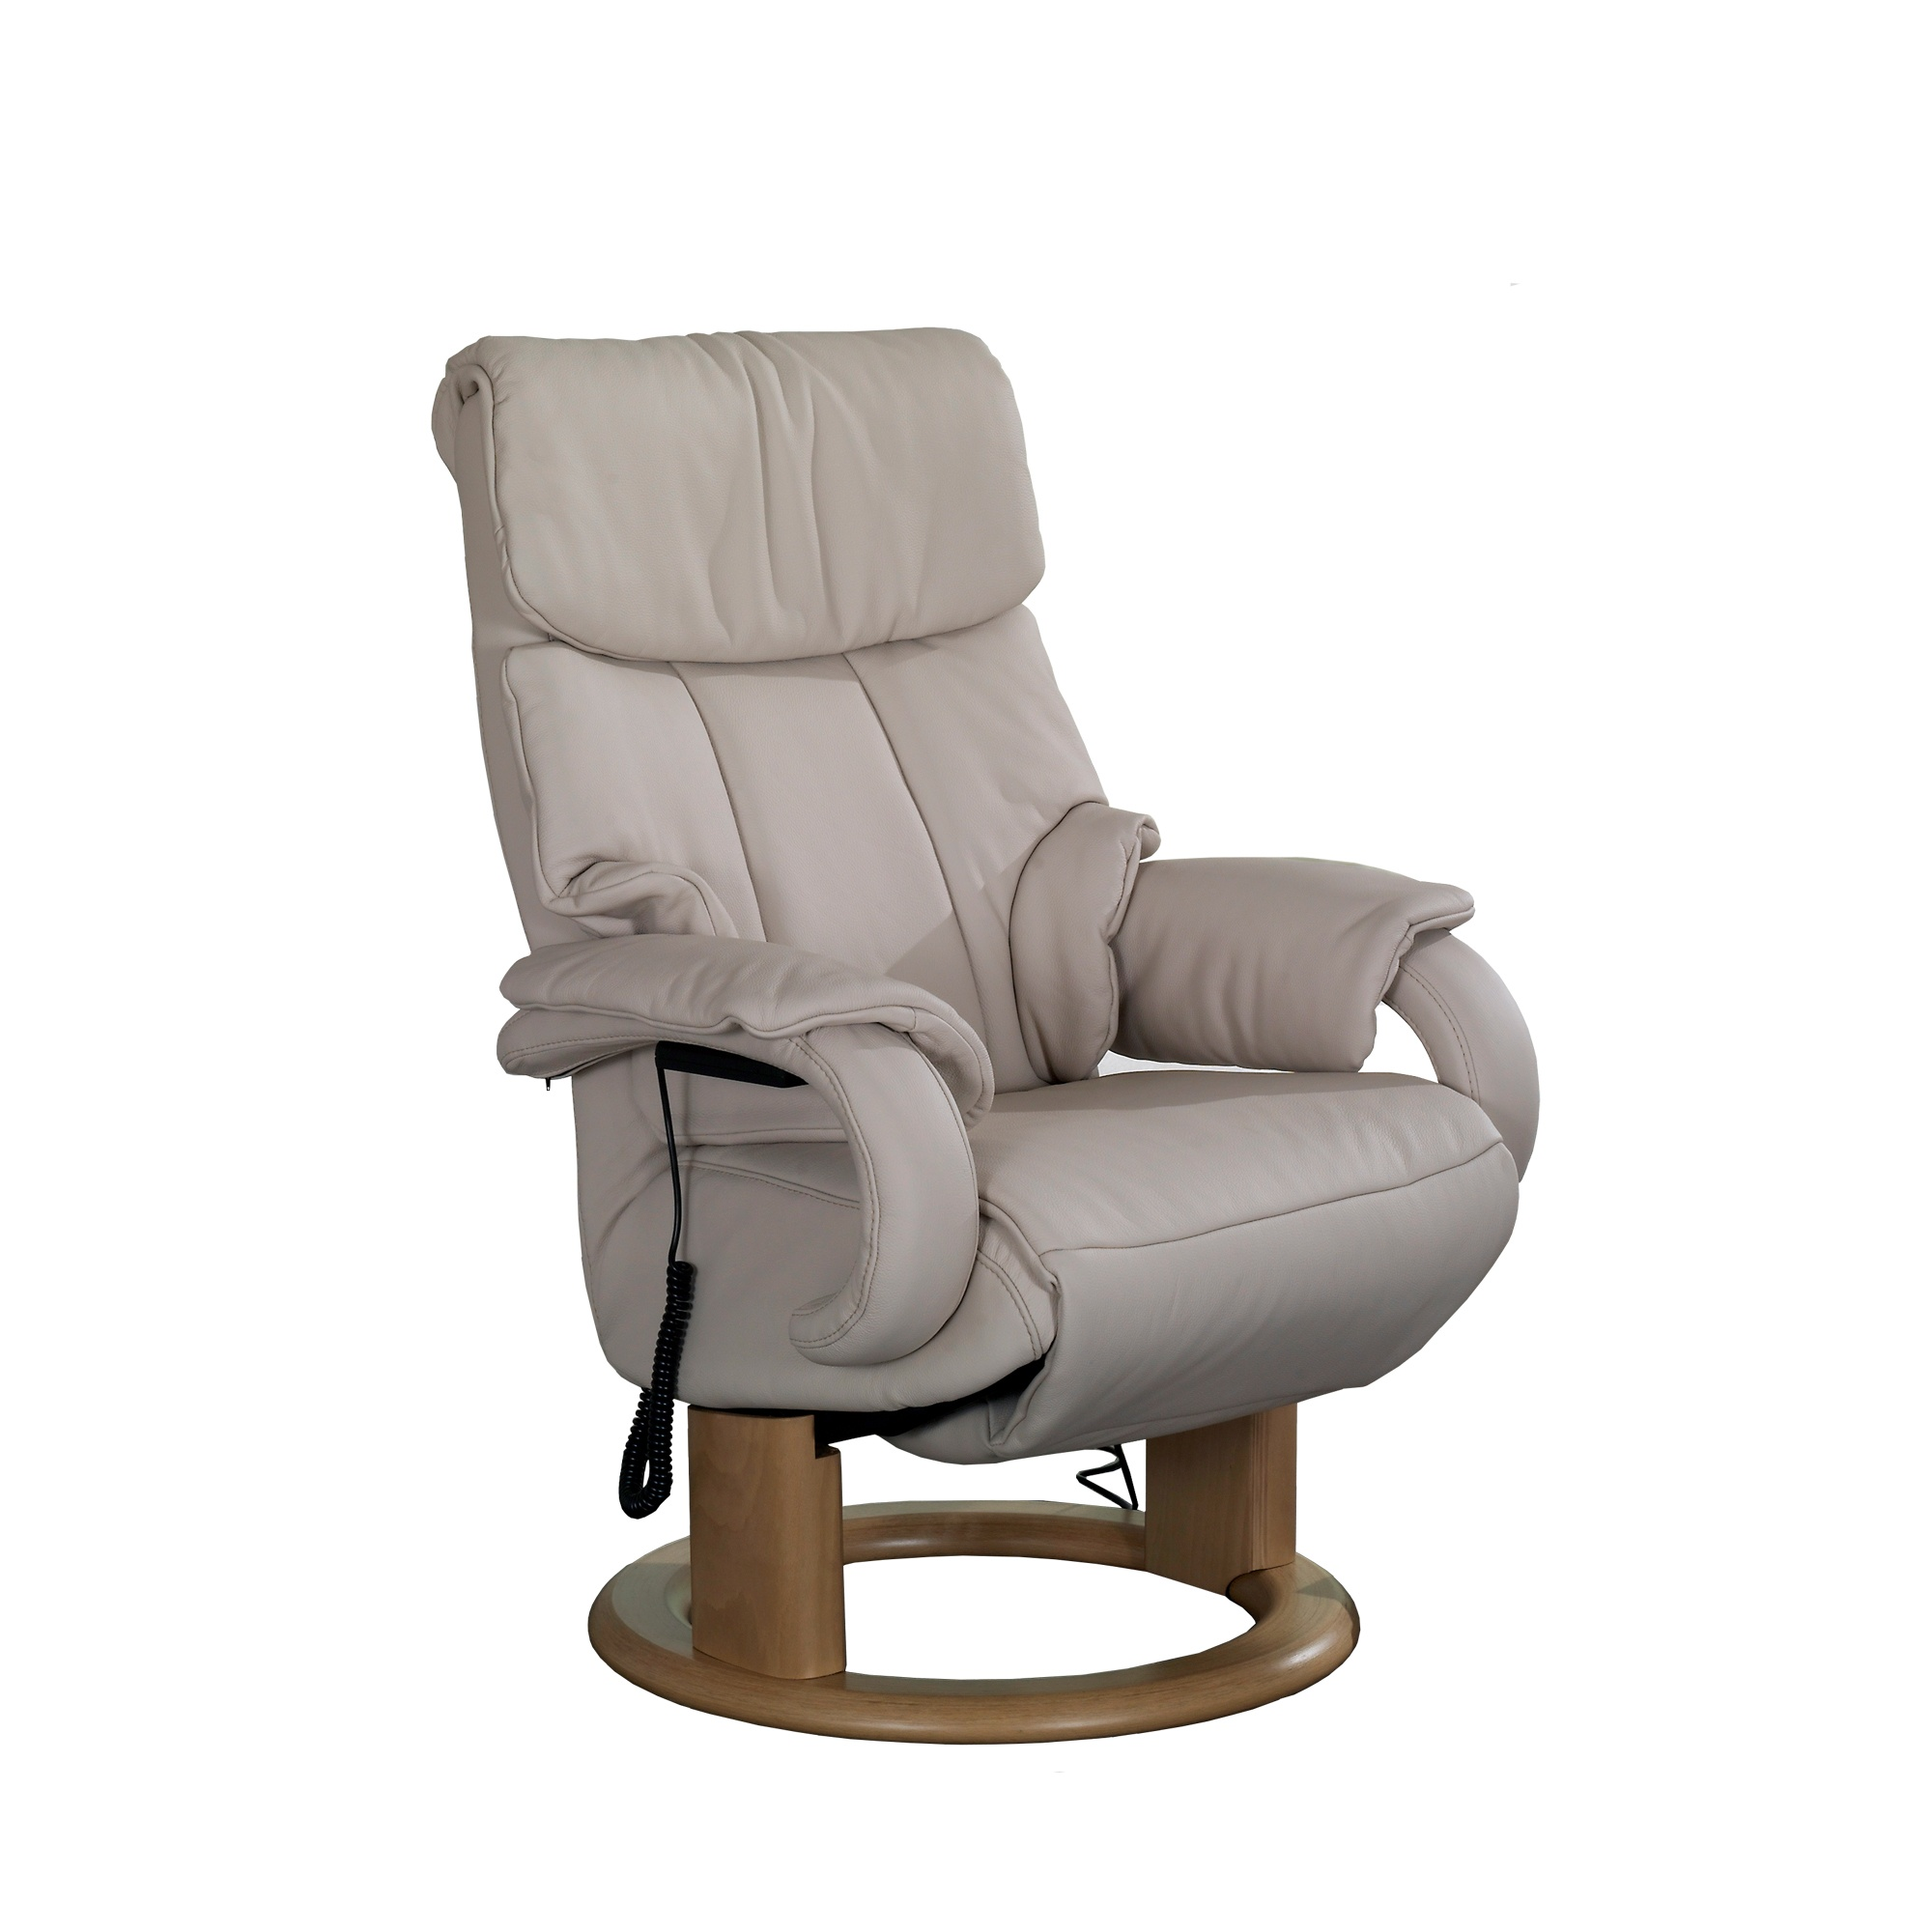 stressless chair sizes expensive dining chairs himolla tobi electric recliner armchair wide - cookes furniture